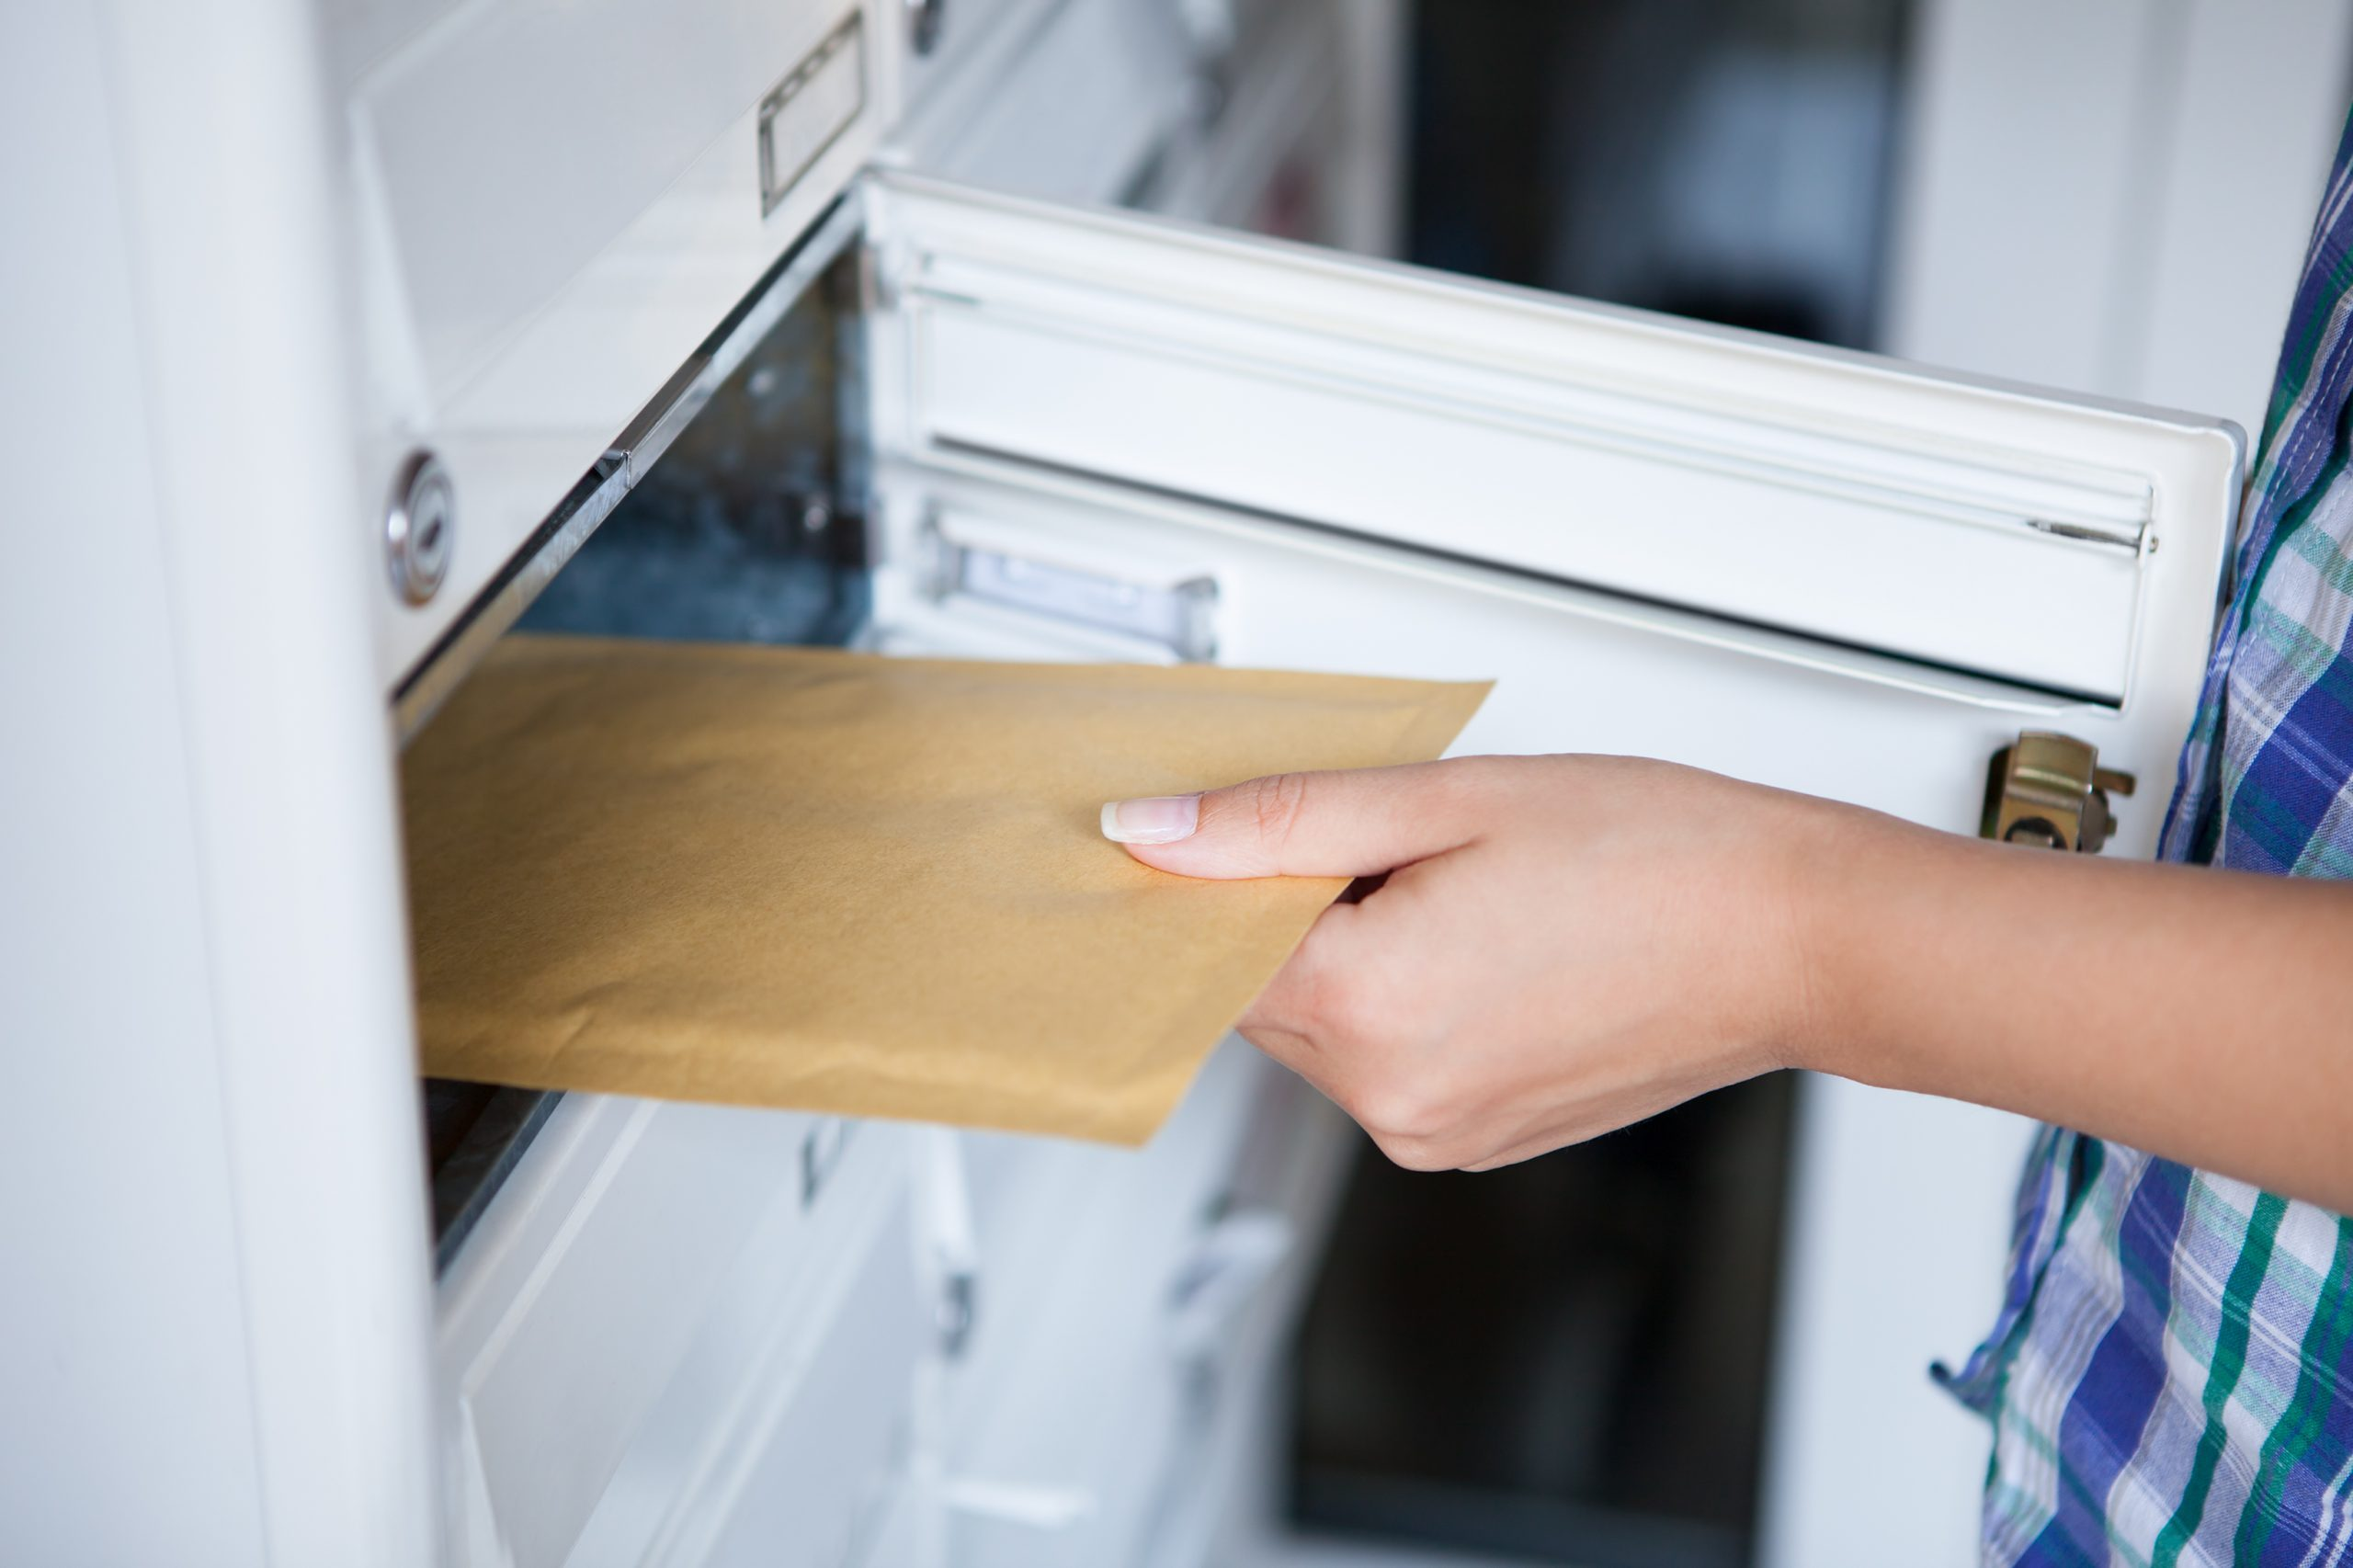 Close-up of woman's hand pulling envelop from mailbox